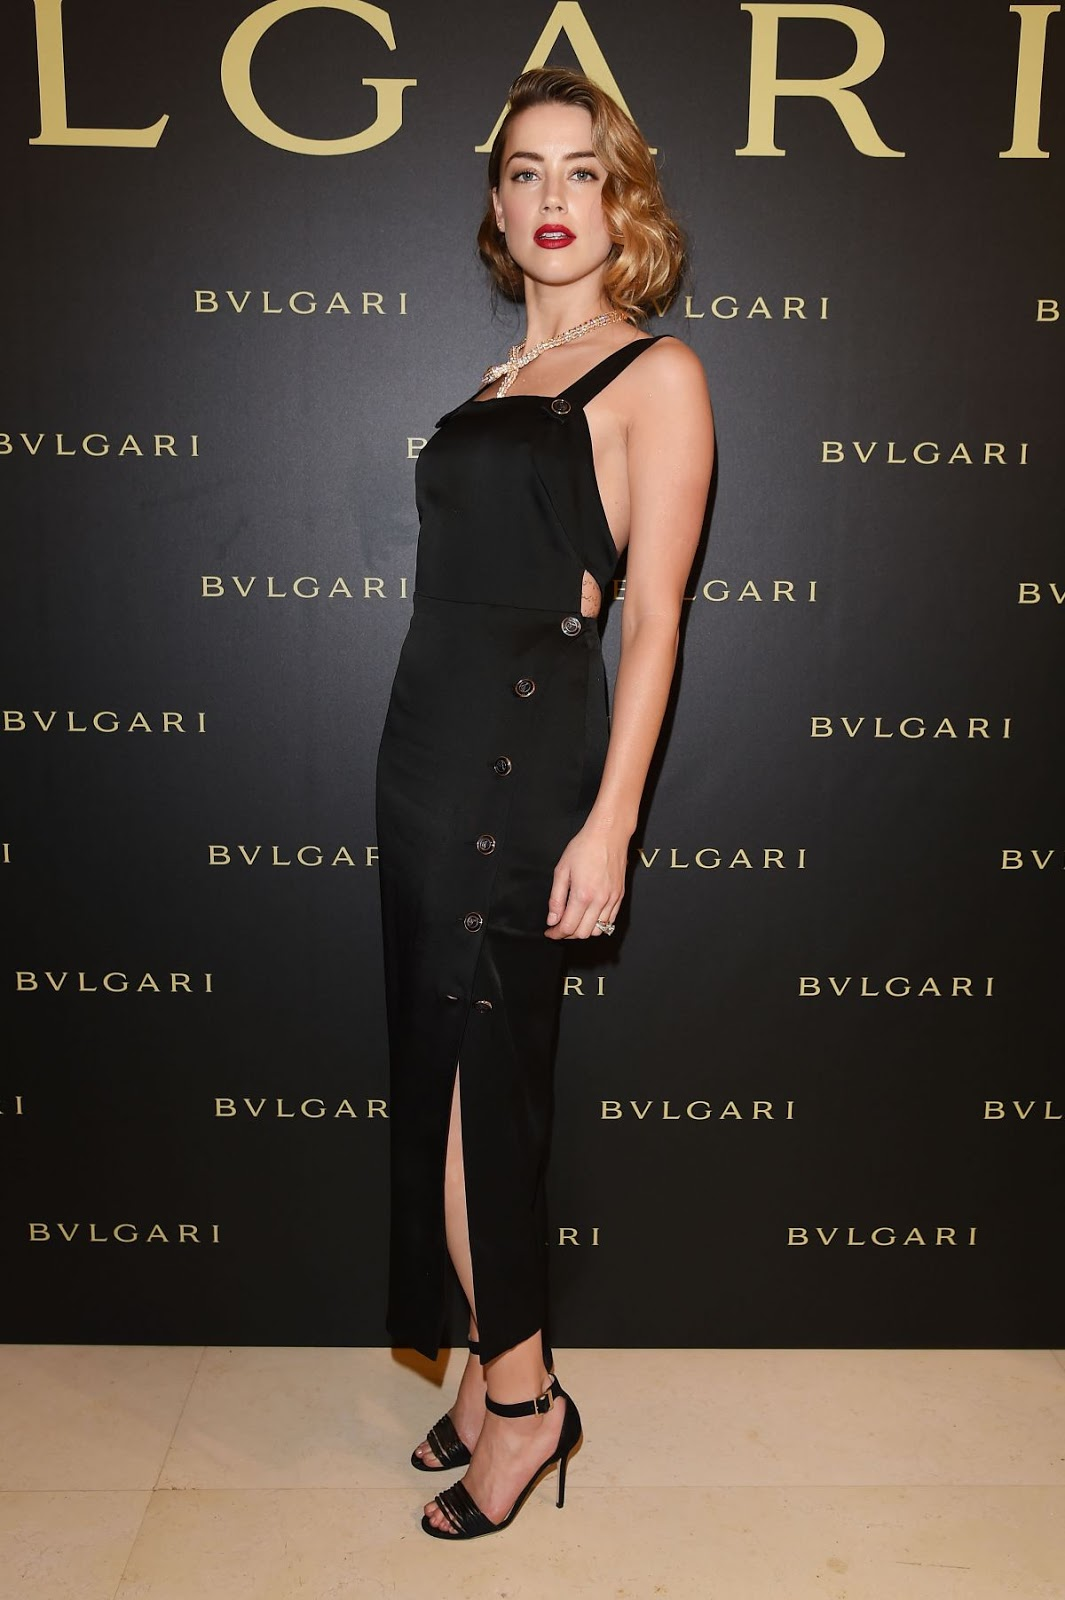 Full HQ Photos of Amber Heard in Black dress At Bulgari Haute Couture Cocktail Party In Paris